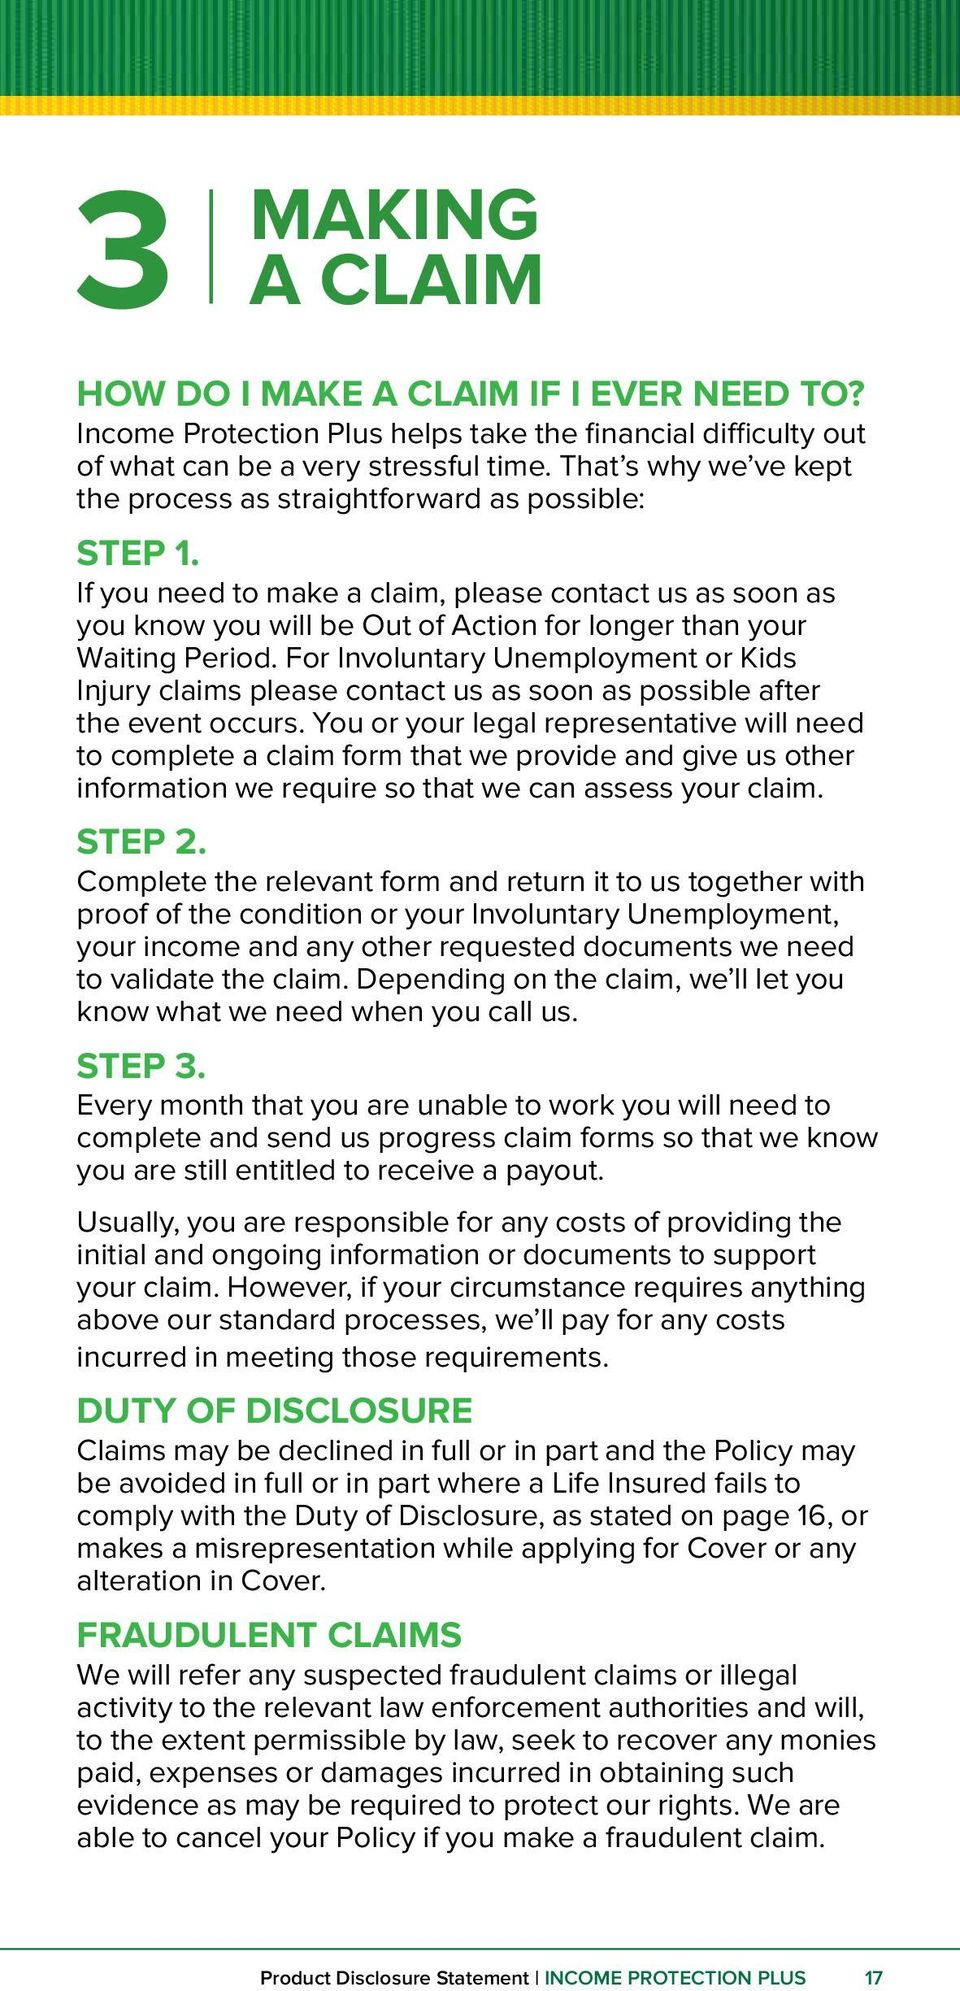 If you need to make a claim, please contact us as soon as you know you will be Out of Action for longer than your Waiting Period.